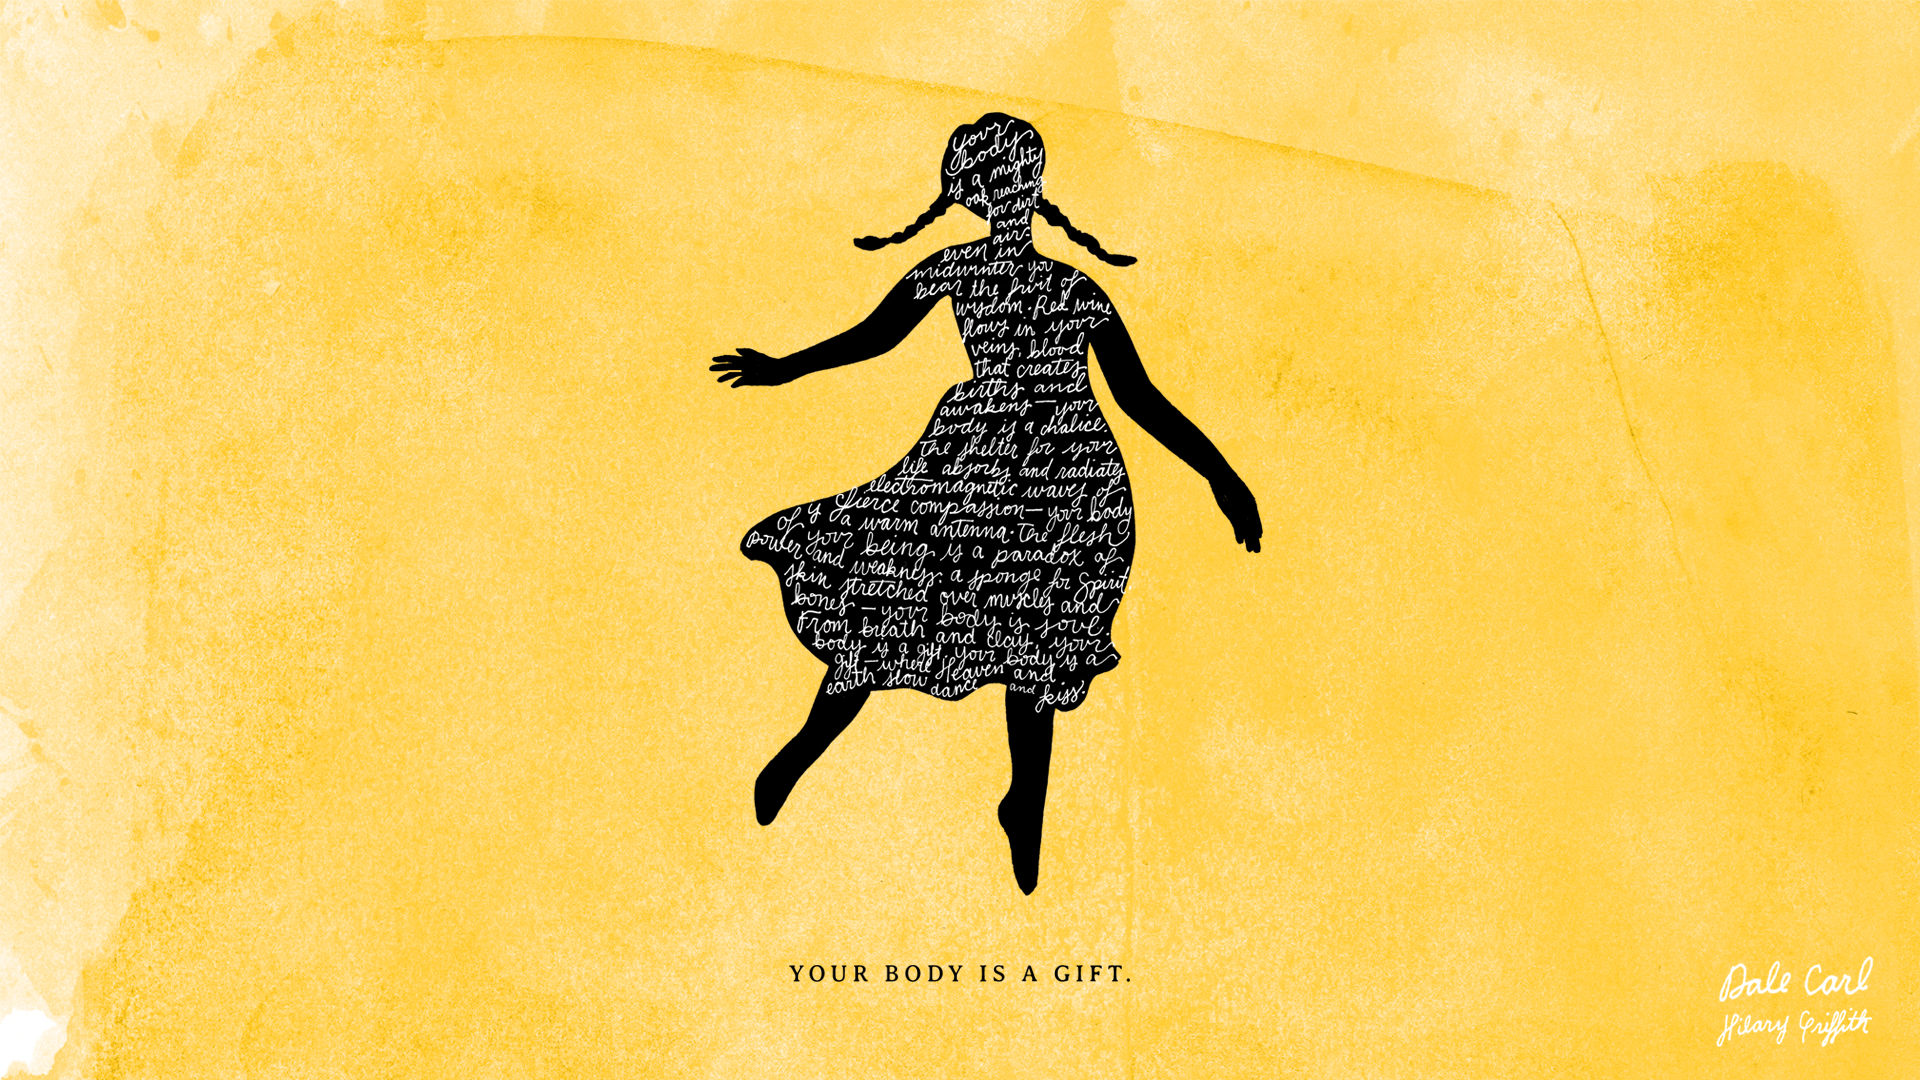 Your body is a gift - Desktop Background.jpg